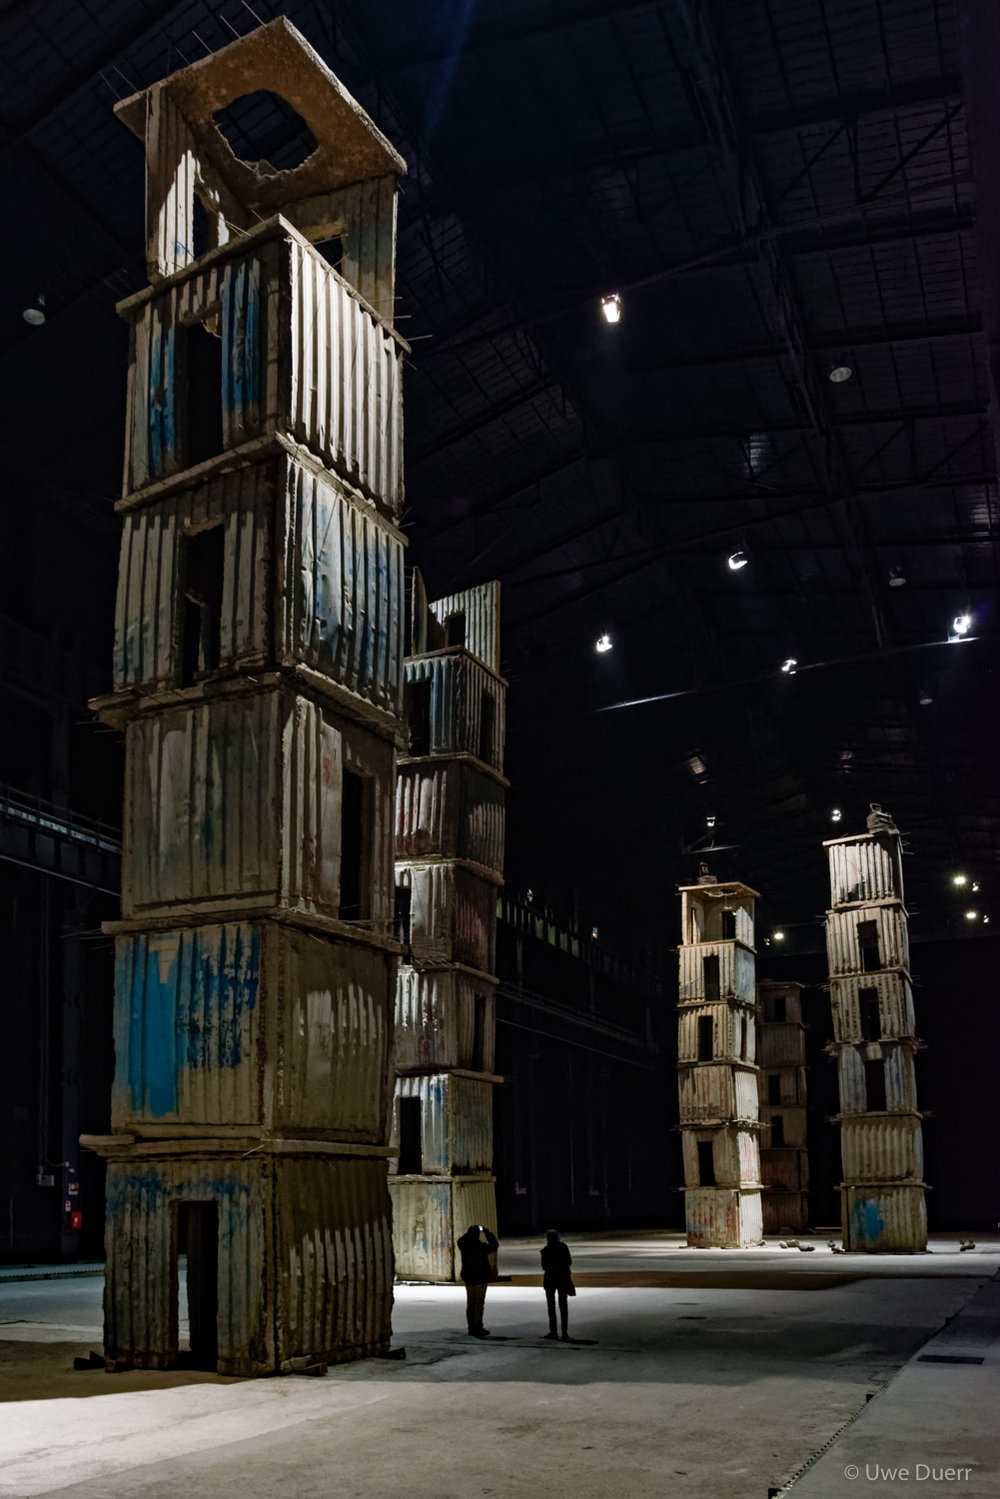 Anselm Kiefer - The Seven Heavenly Palaces, 2004-2015.